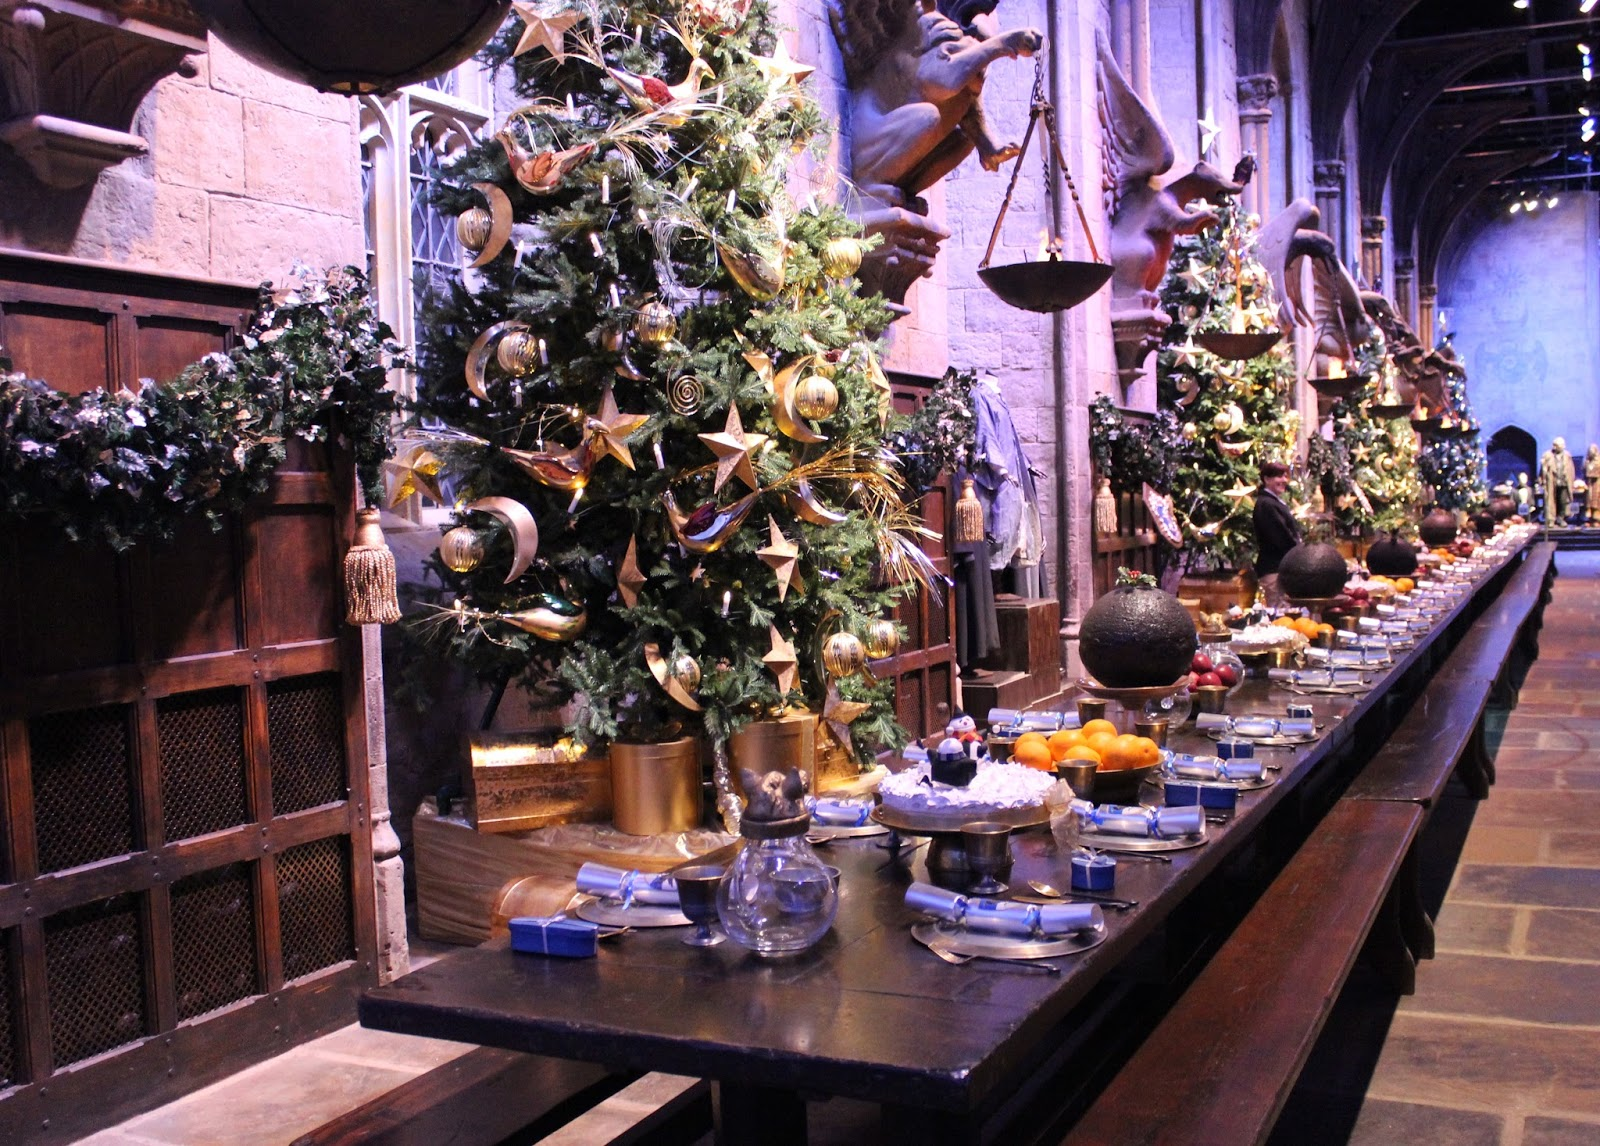 Harry Potter studio tour london great hall food